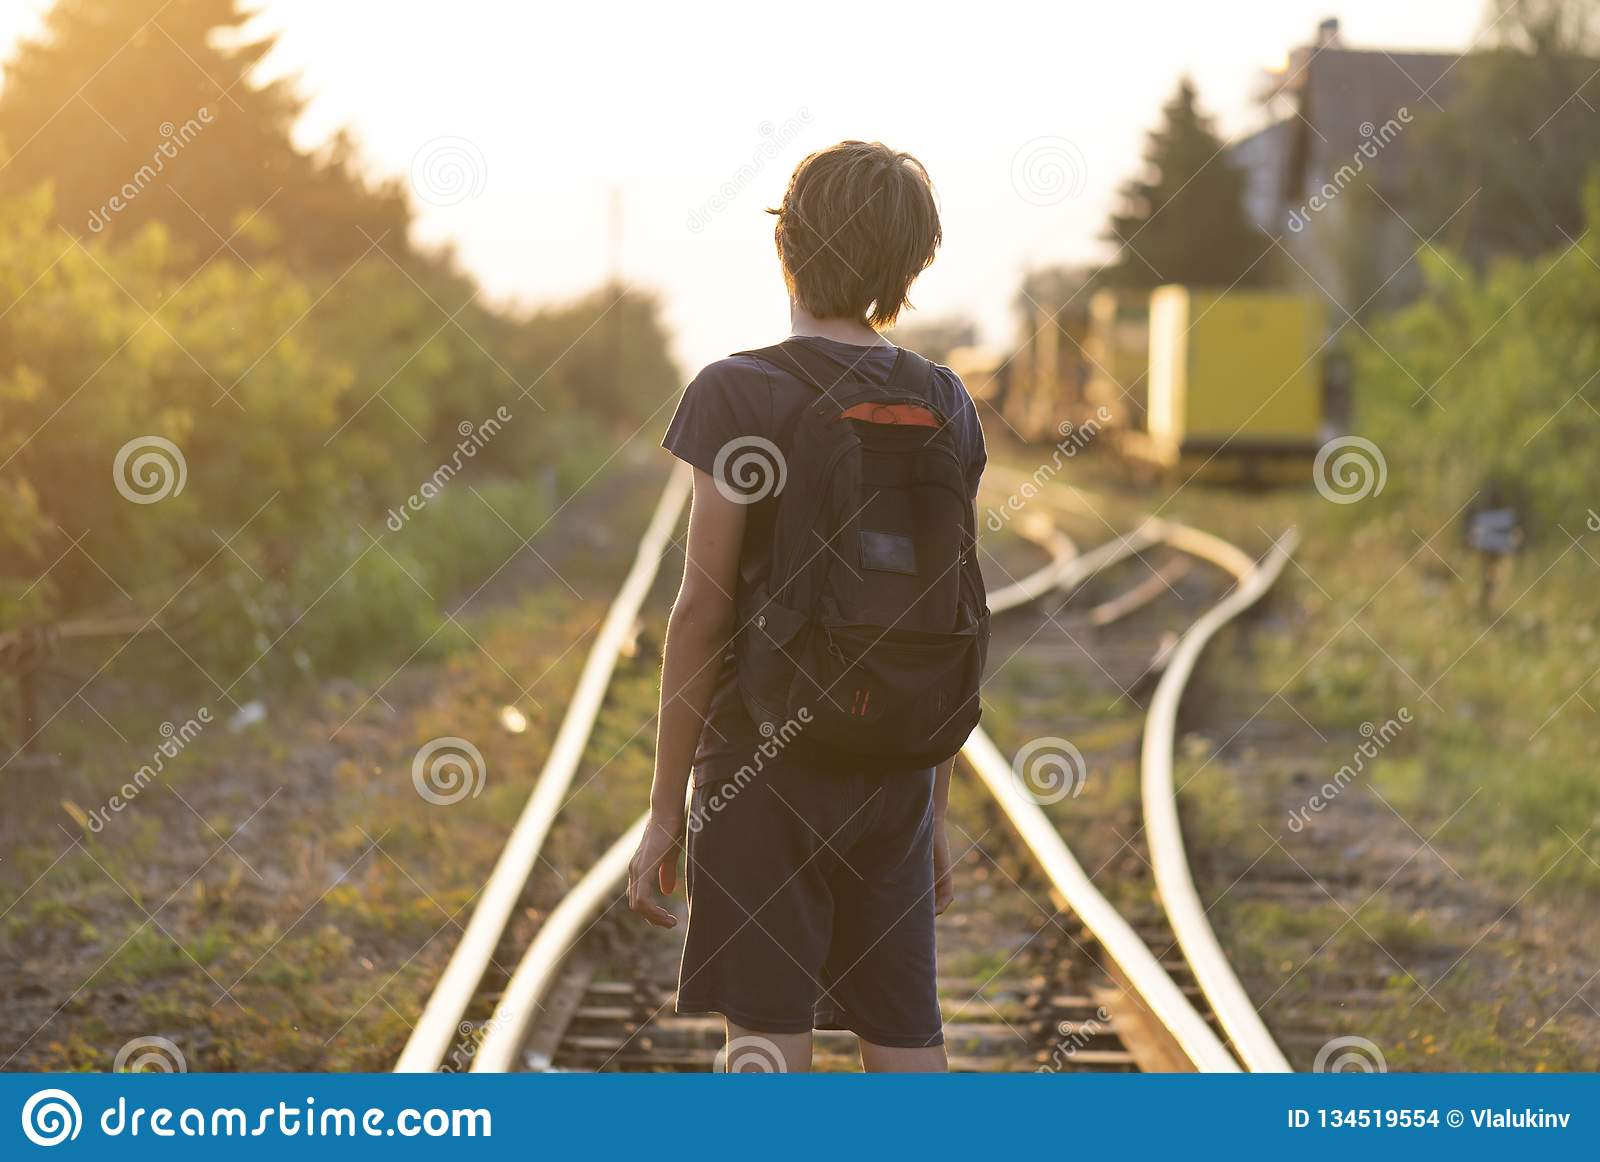 A lonely boy with a bag stand on the rails